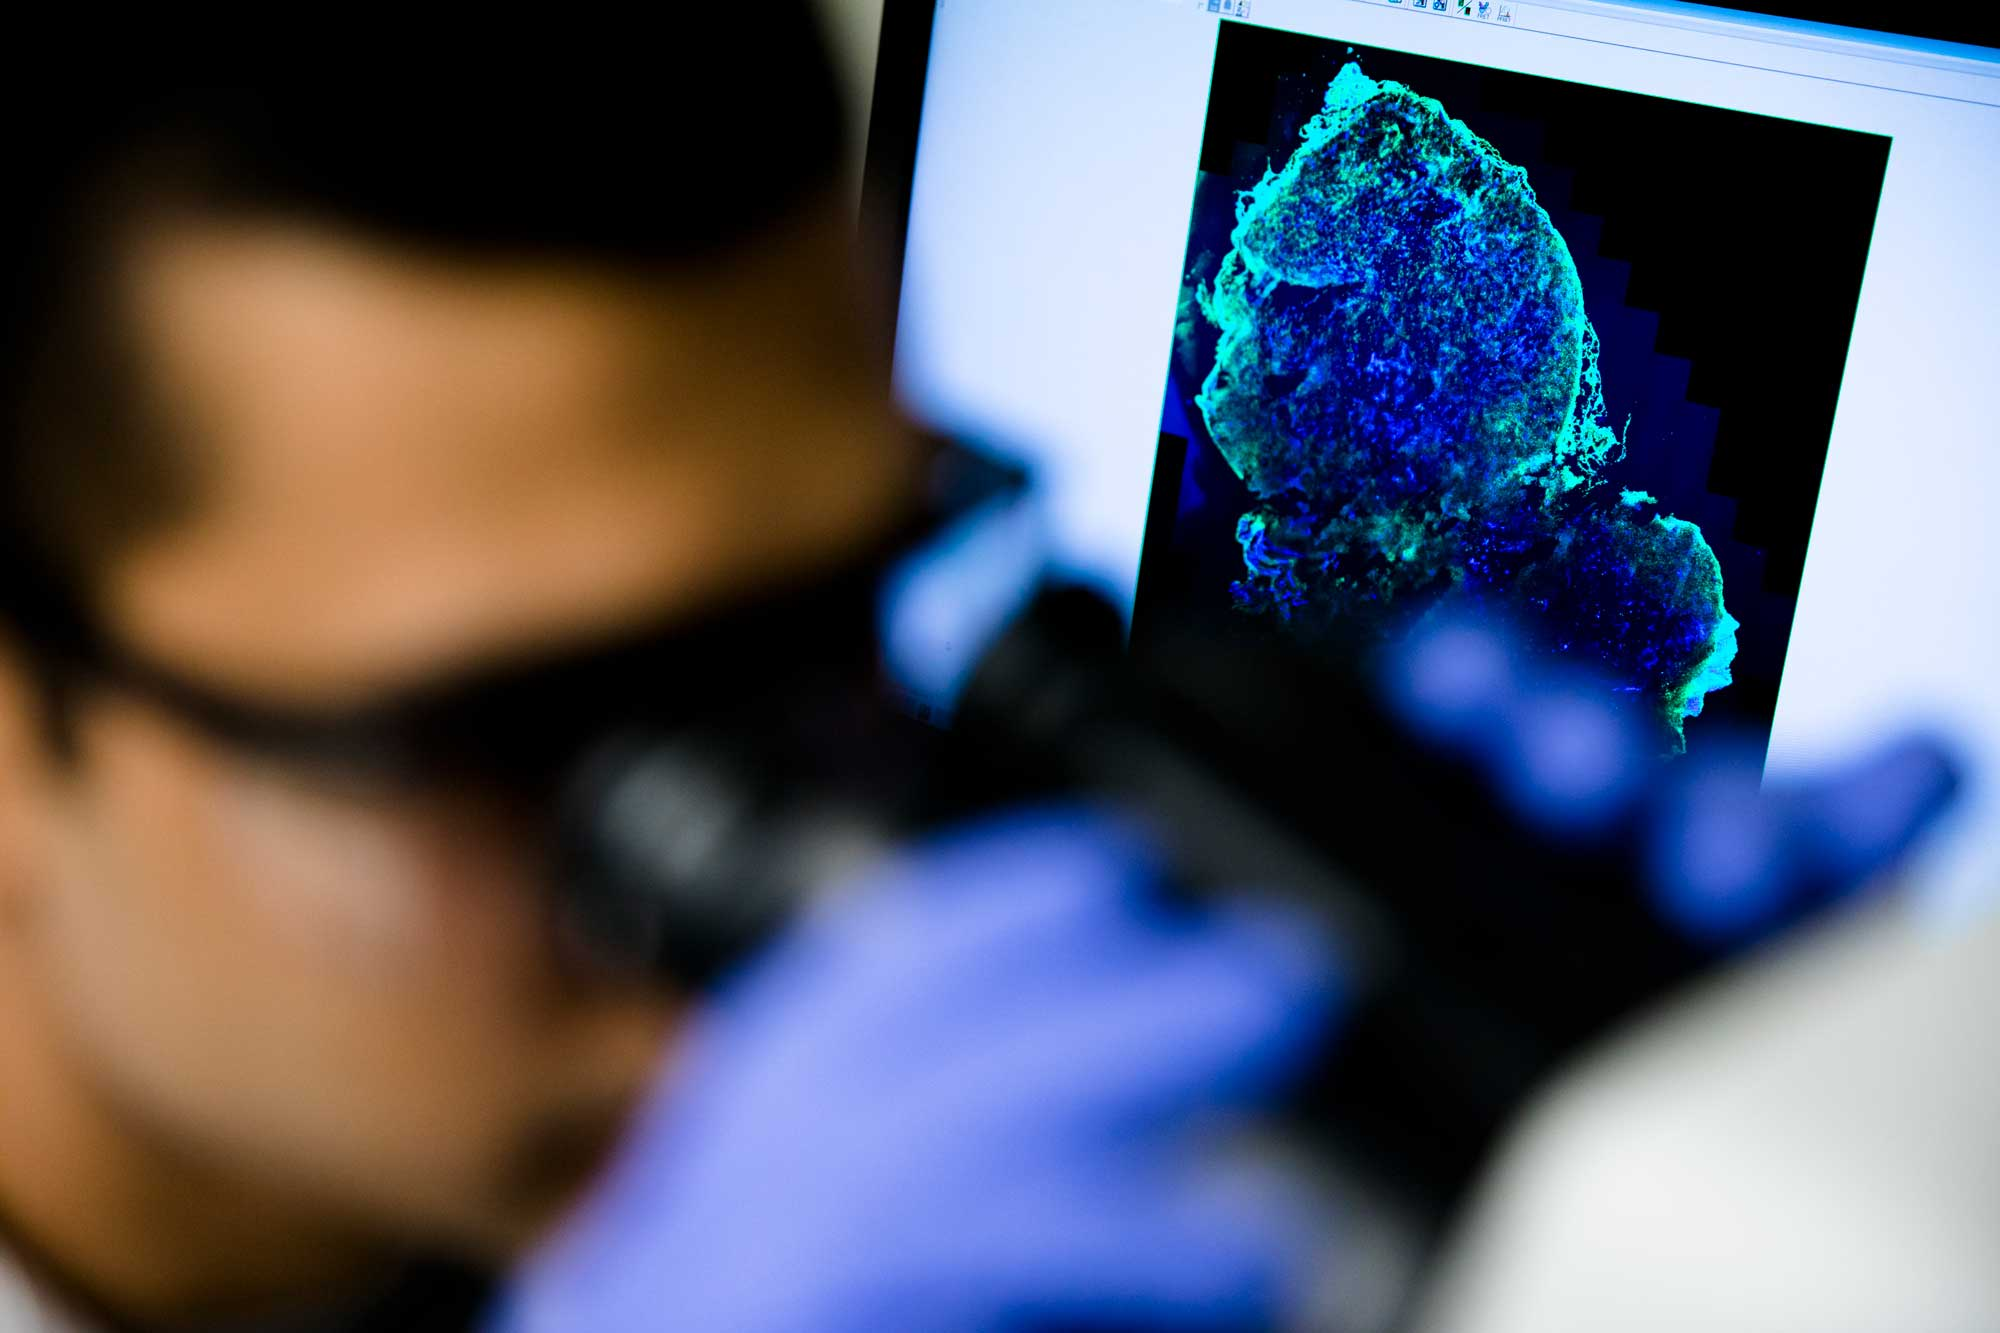 Sumit Bhatnagar, a PhD student in chemical engineering, inspects and analyzes tumor cells used in his research developing a diagnostic screening pill for breast cancer and other diseases under the direction of Greg Thurber, an assistant professor in chemical engineering. The pill would contain a fluorescent imaging agent connected to a targeting molecule that binds to cancerous cells in breast tissue, in order to make earlier and more accurate breast cancer diagnoses. Photo: Evan Dougherty, Michigan Engineering